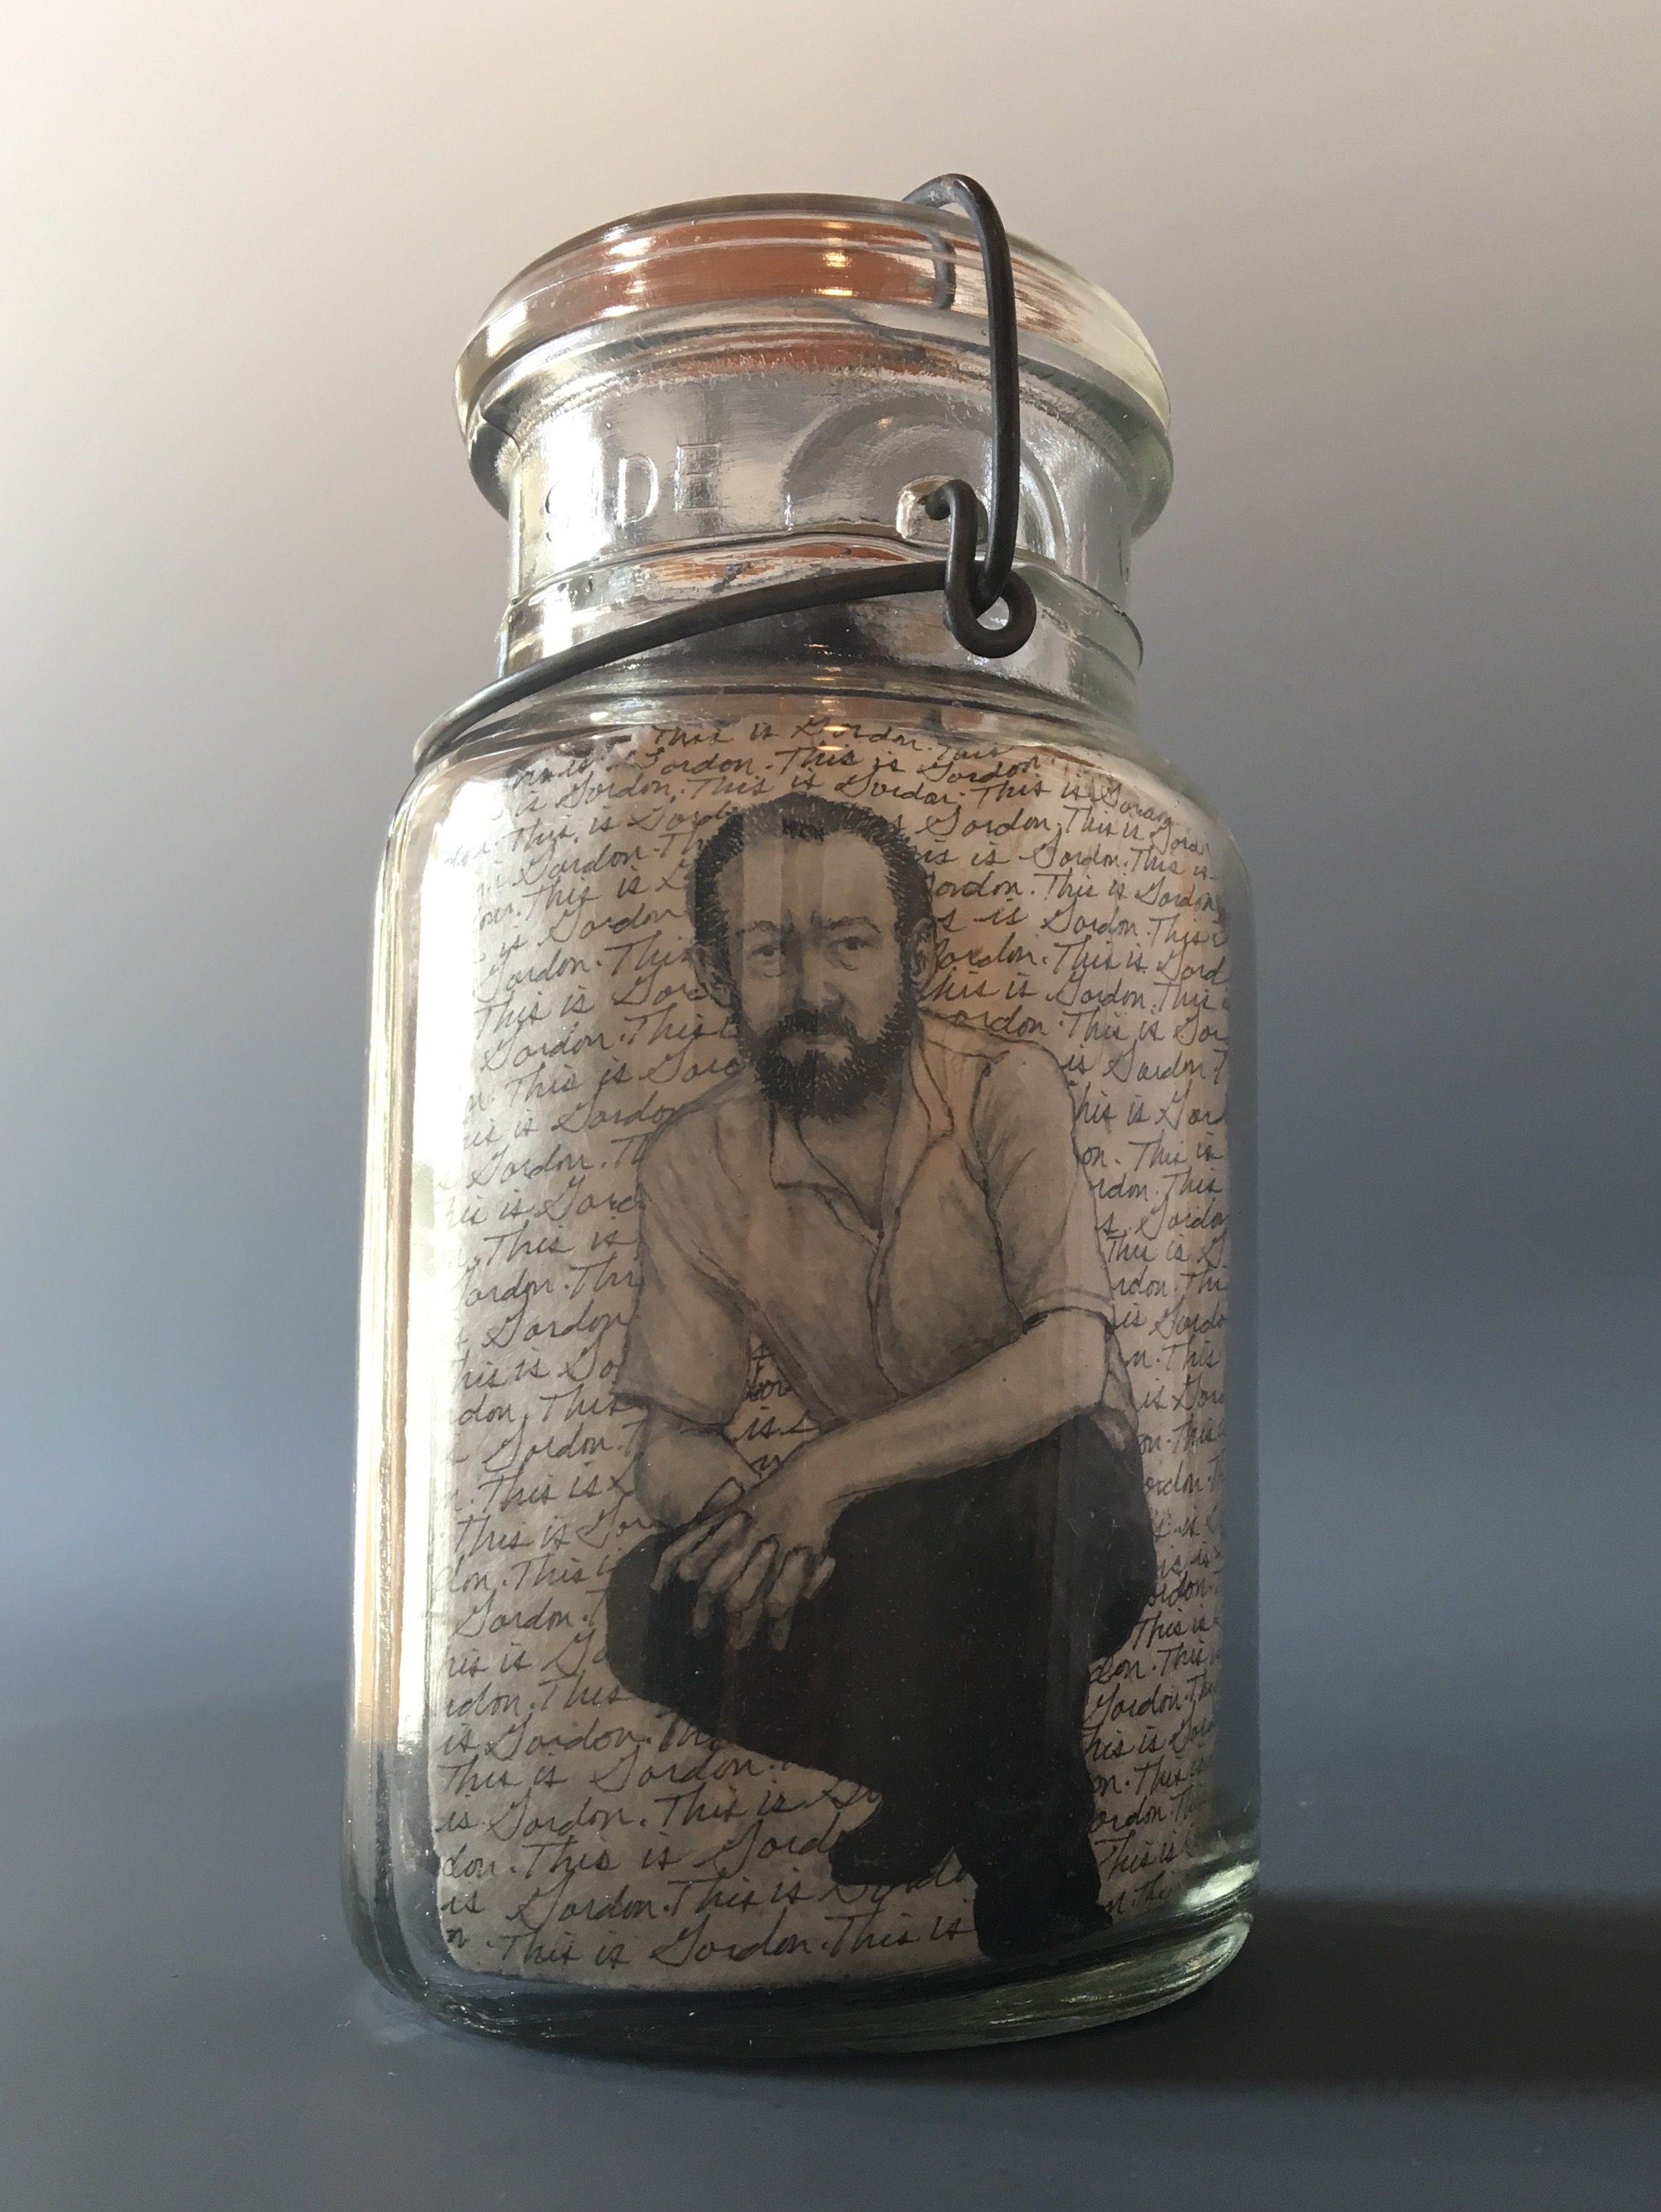 This is Gordon...Losing His Patience  bottle drawing; ink, graphite, white charcoal on handmade paper, glass bottle, wool